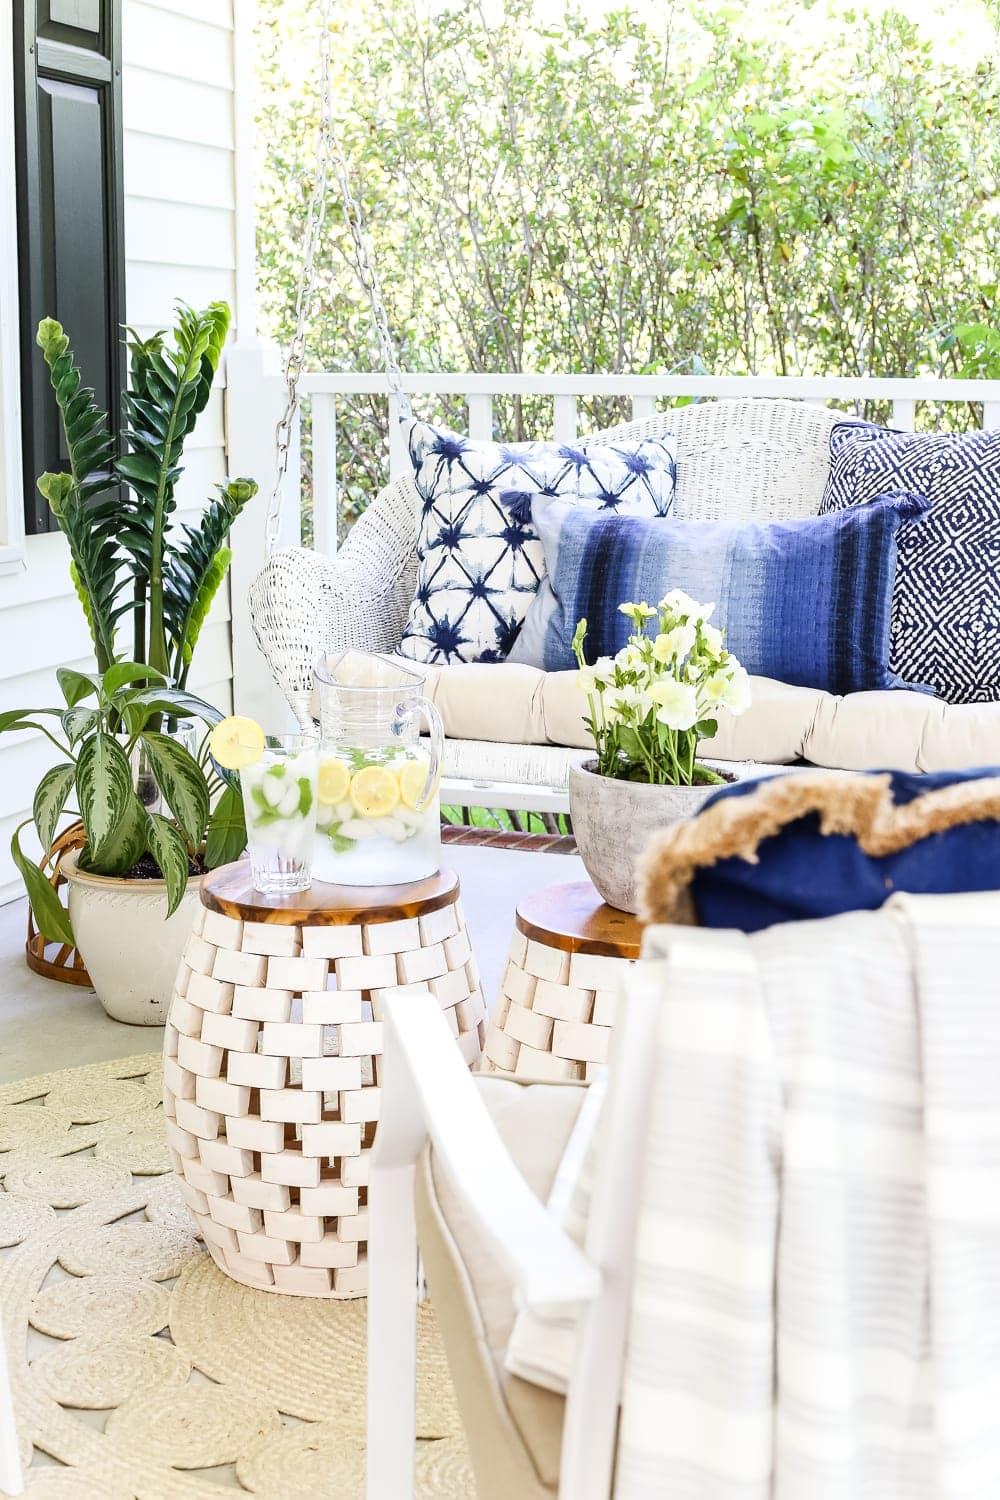 outdoor decor on front porch for summer